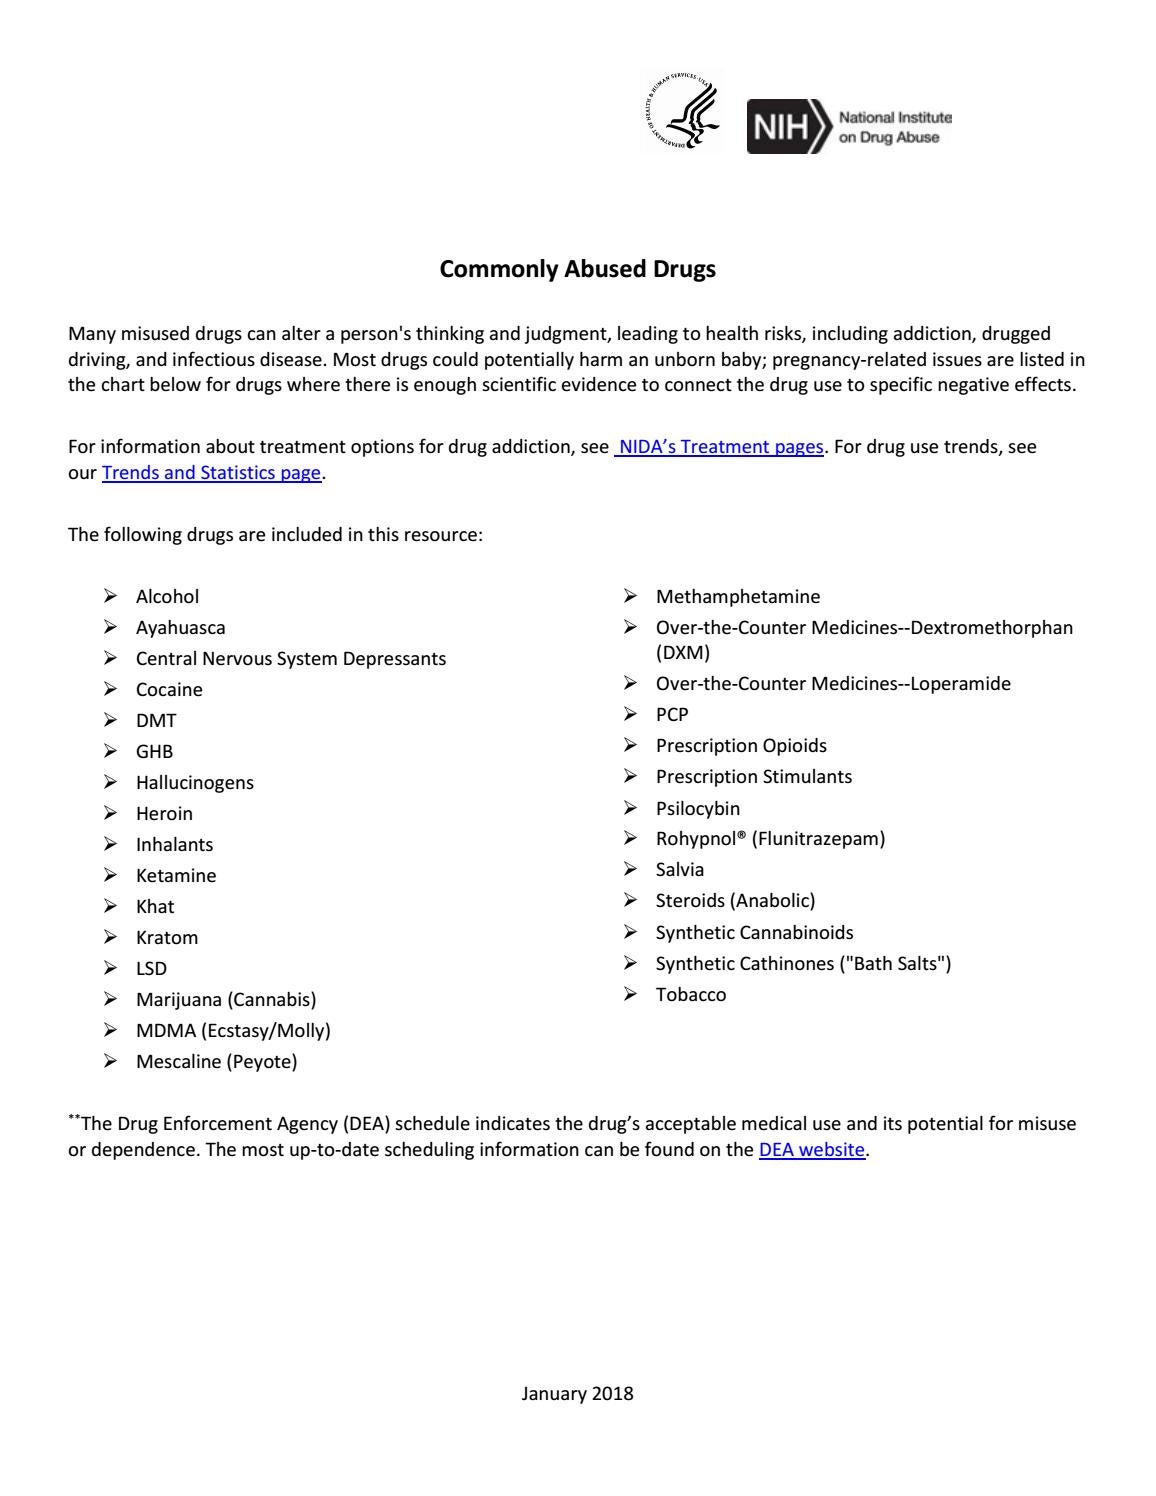 Commonly Abused Drugs Charts By Rise4war Community Literature Issuu